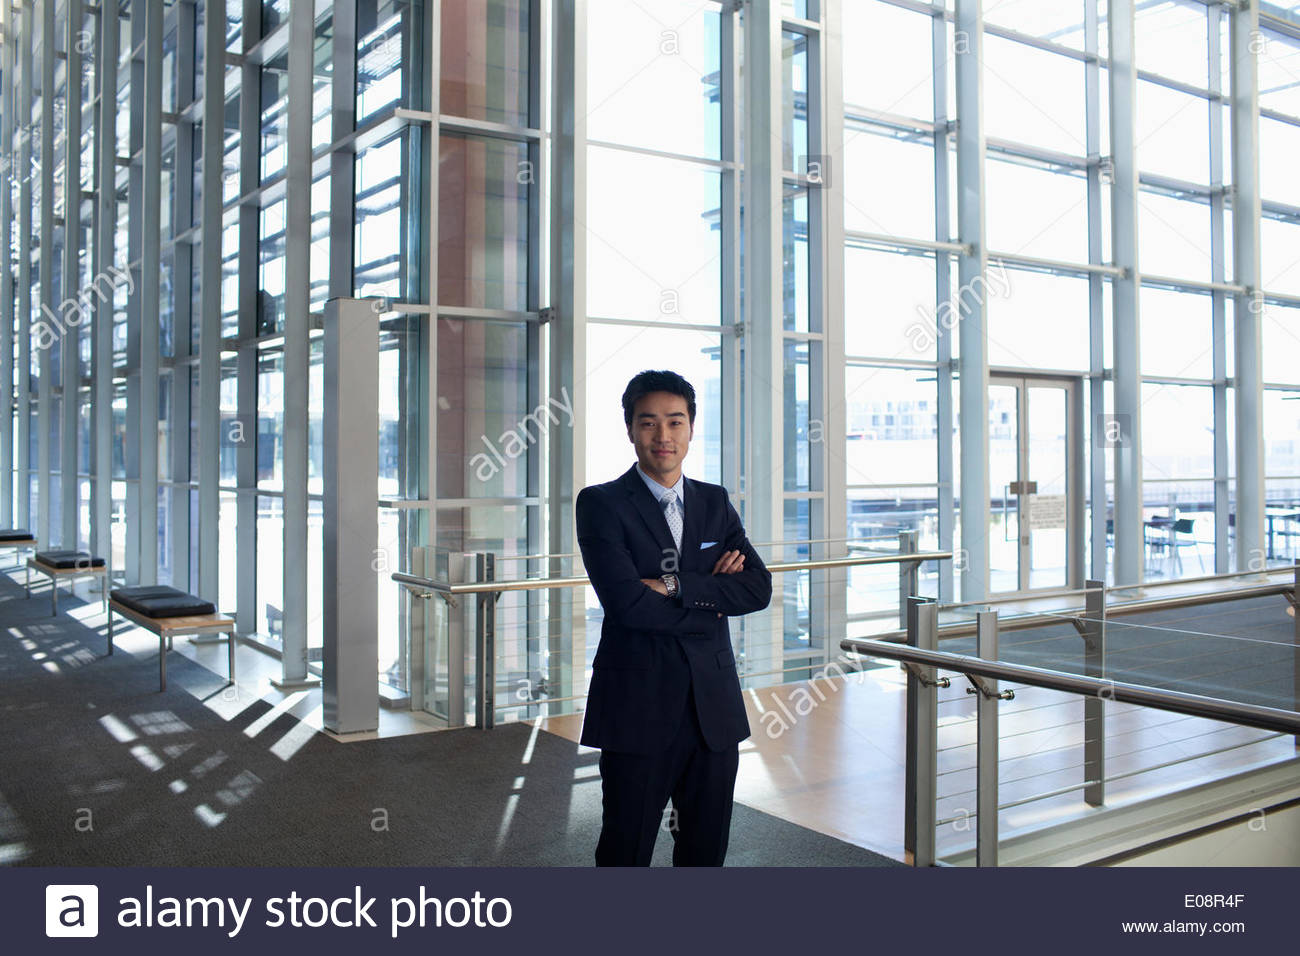 Portrait of smiling businessman in modern lobby - Stock Image